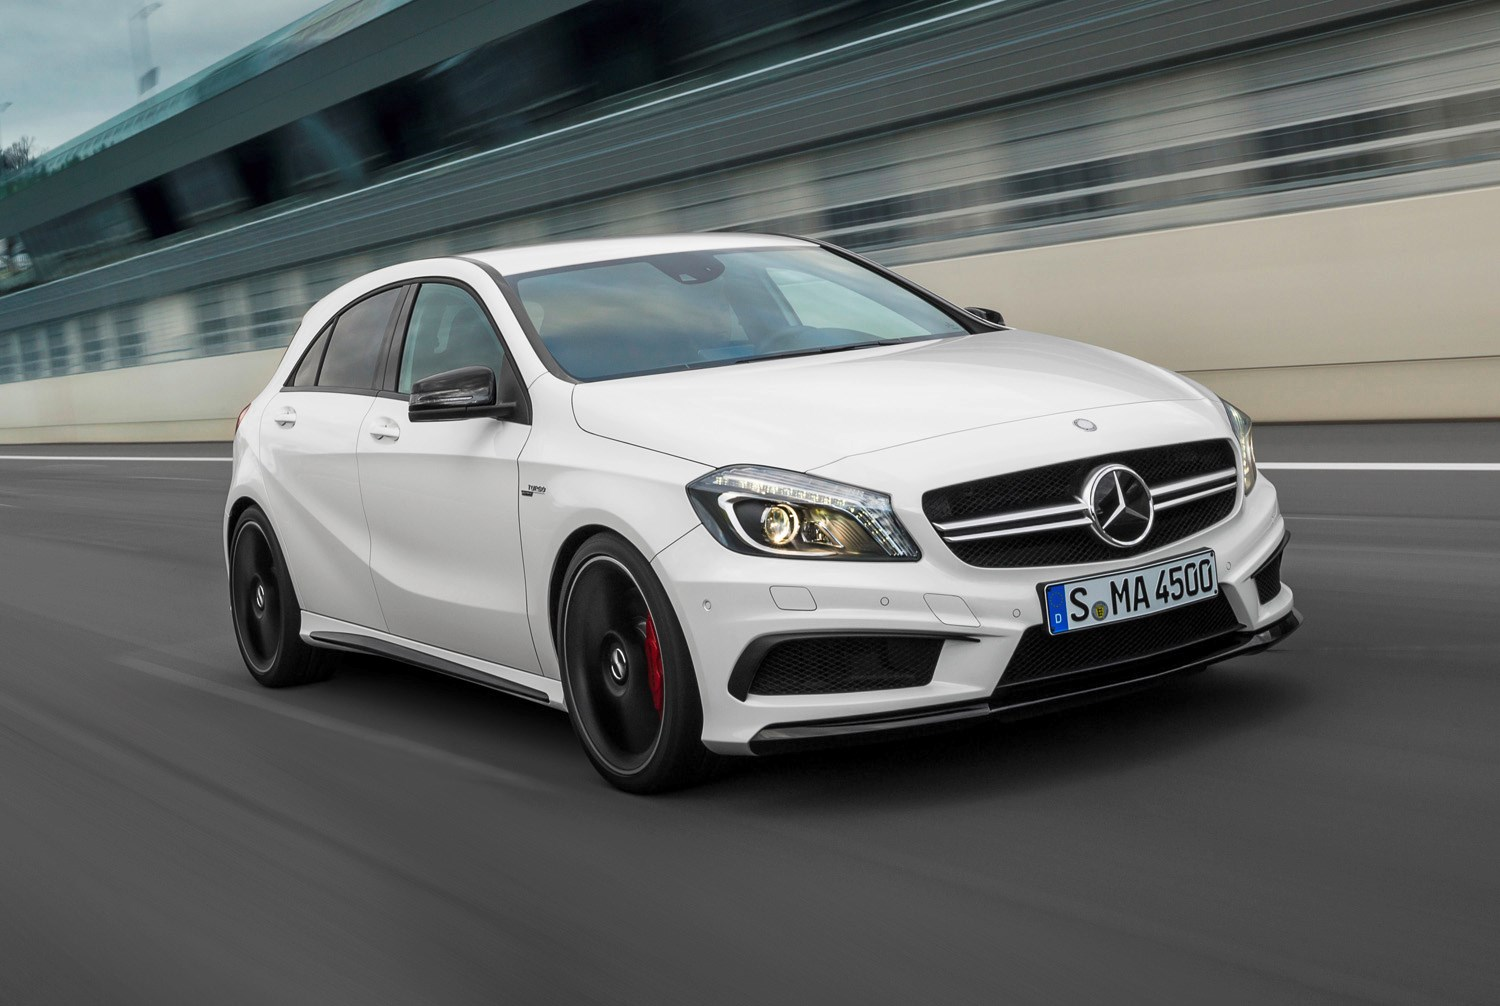 Mercedes benz a class amg review 2013 2018 parkers for How much is a mercedes benz c class